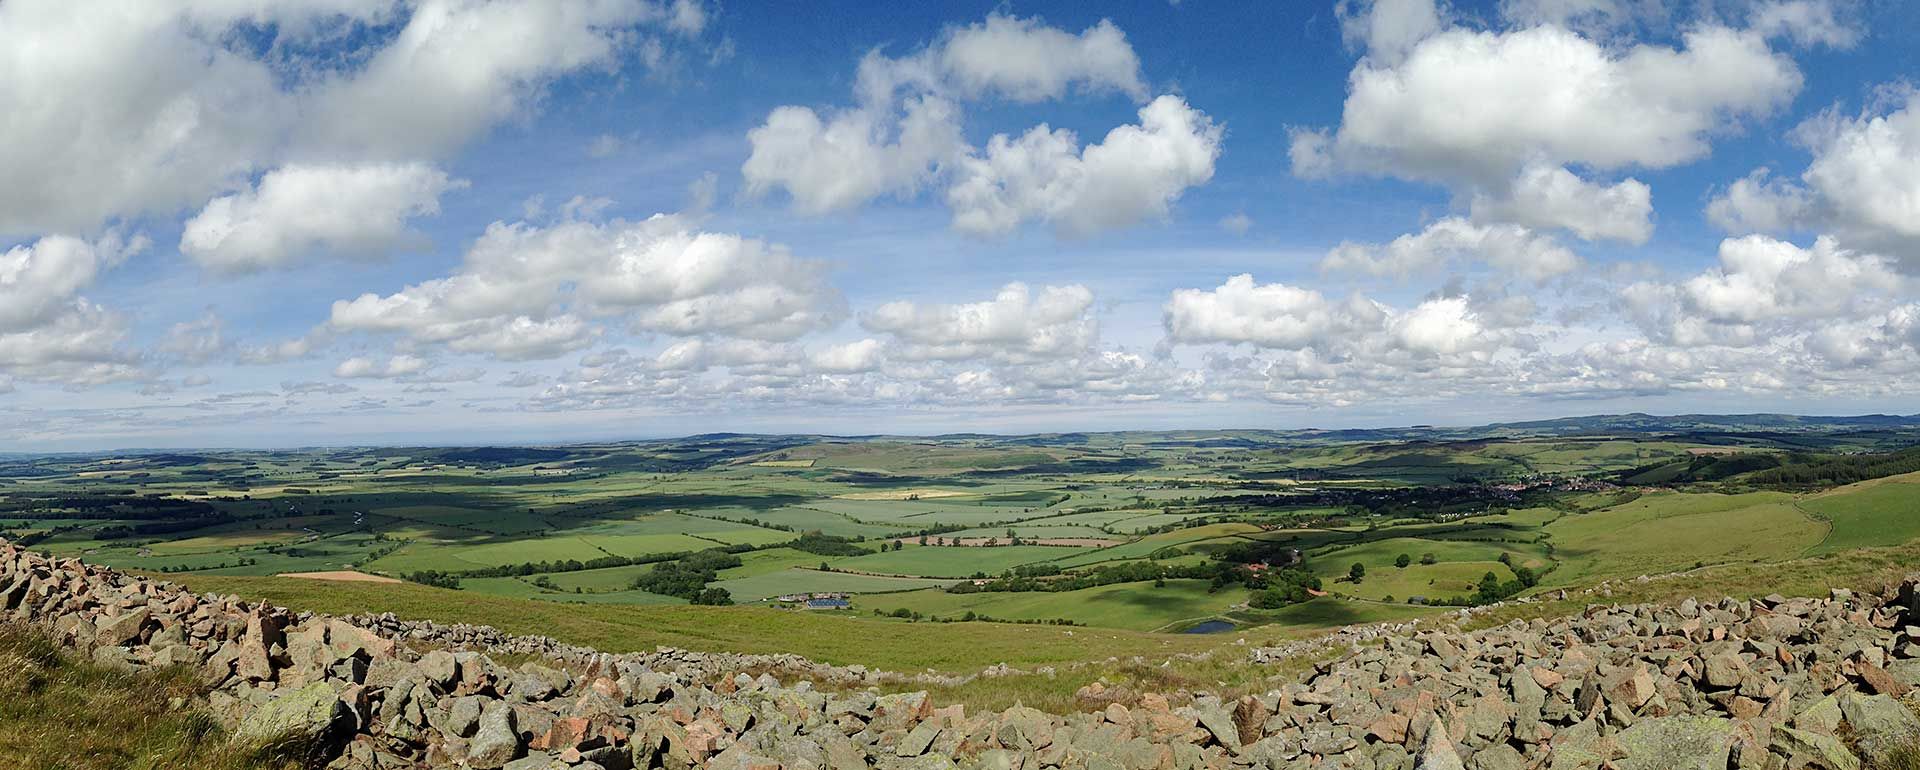 View from Humbleton Hill